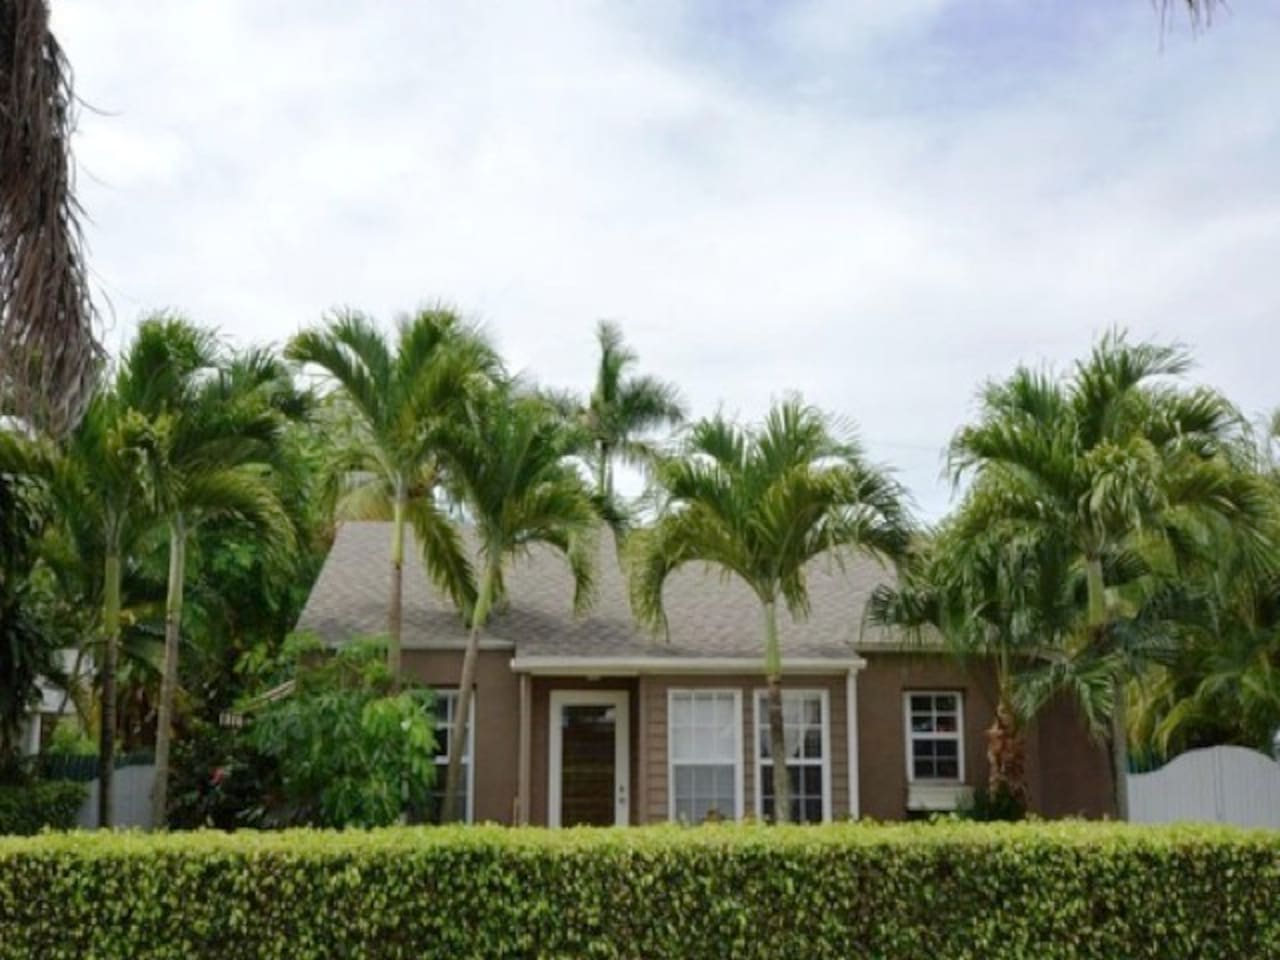 Tropical Bungalow with heated pool - Houses for Rent in West Palm ...